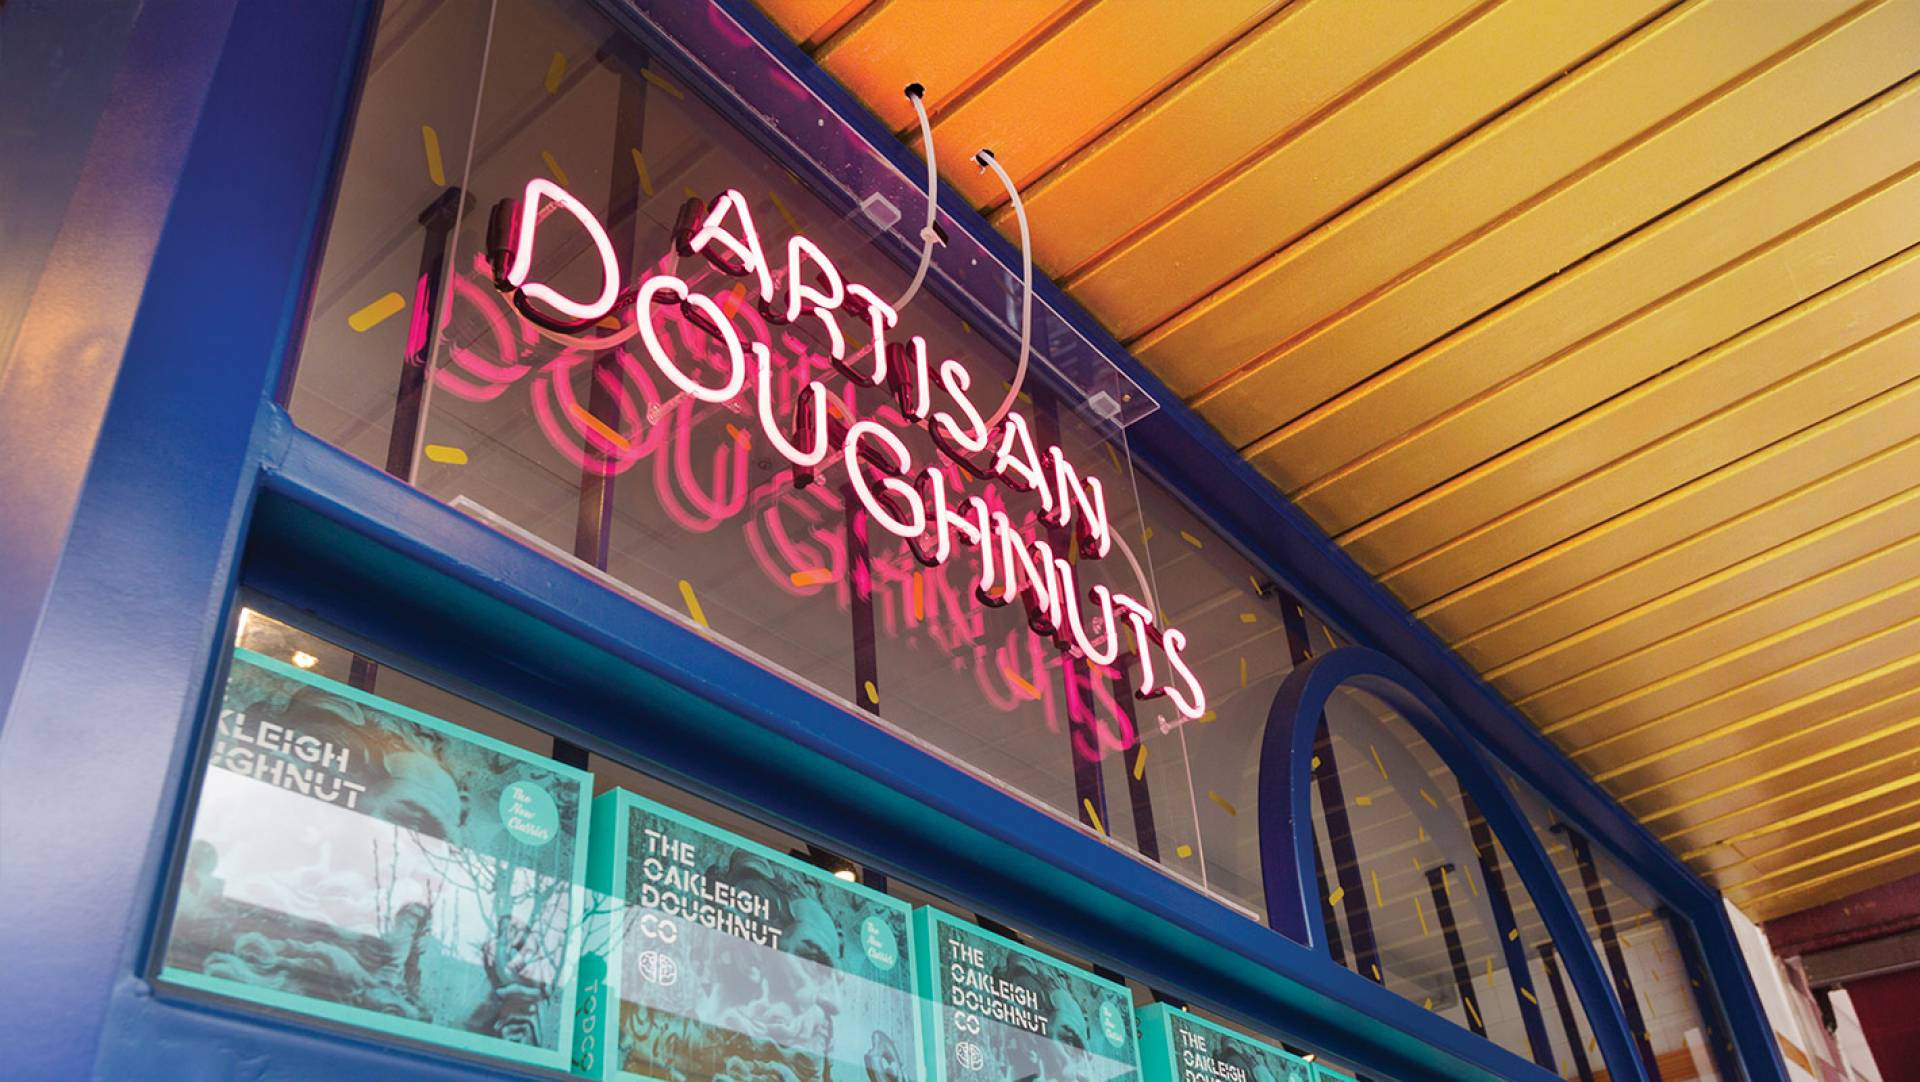 Doughnut & Cafe Design Melbourne-Oakleigh Doughnut Co TODCO Designer: Exposed Neon